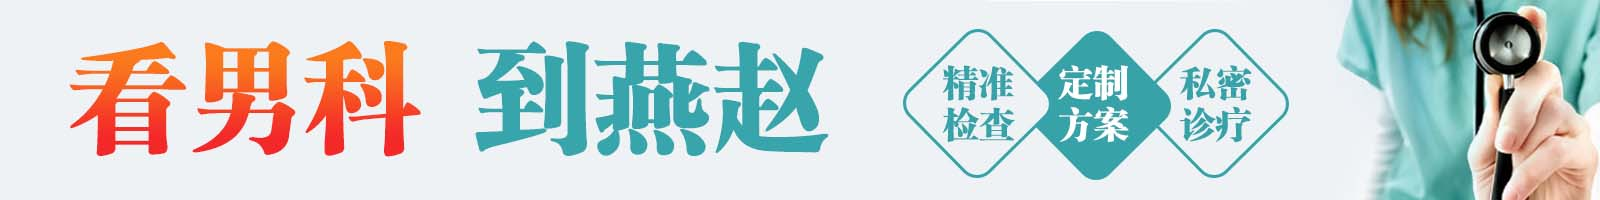 PC_首页banner图